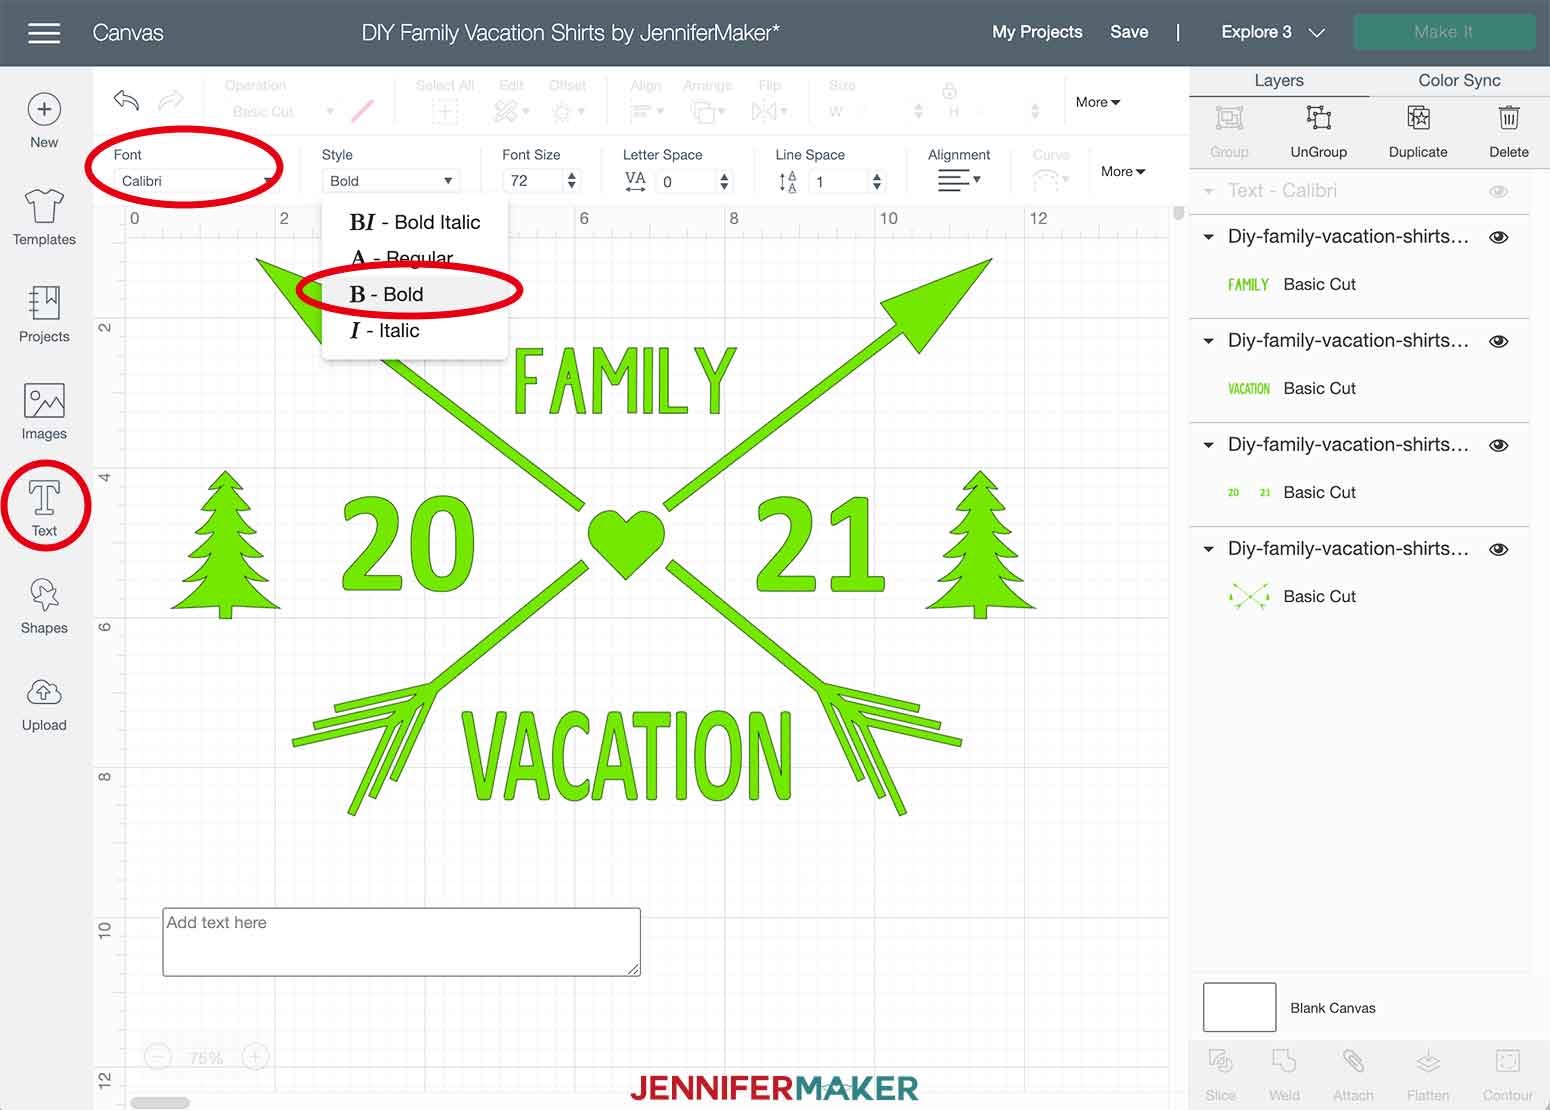 DIY Family Vacation Shirts Cricut Design Space Add Text